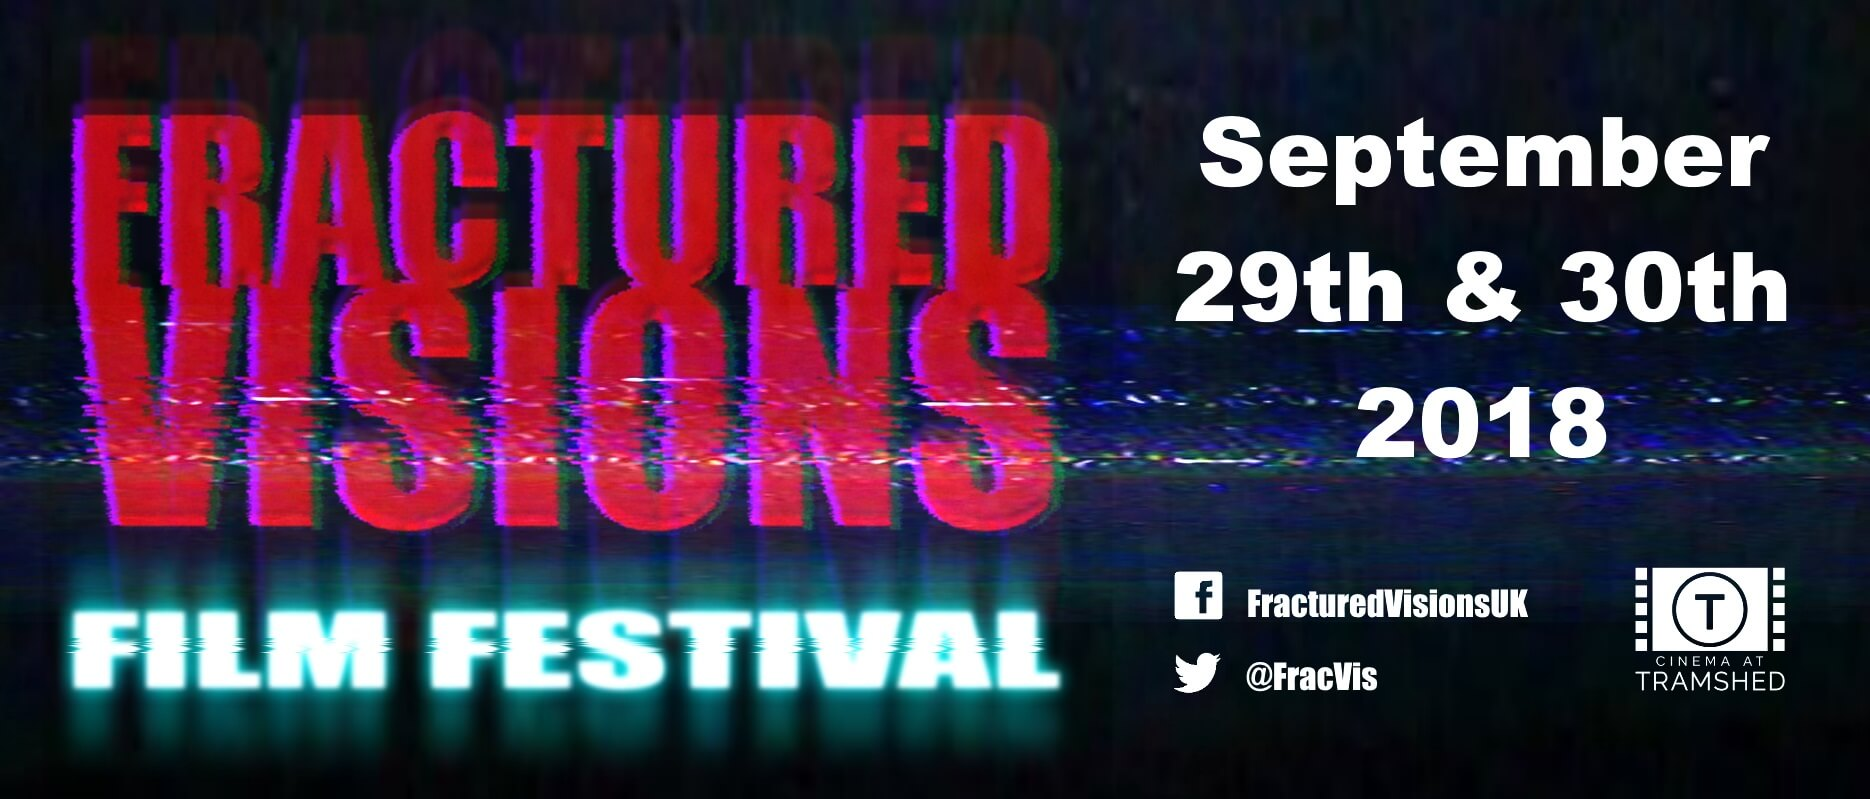 Fractioned visions fest banner 1 - Announcing the Fractured Visions Film Festival